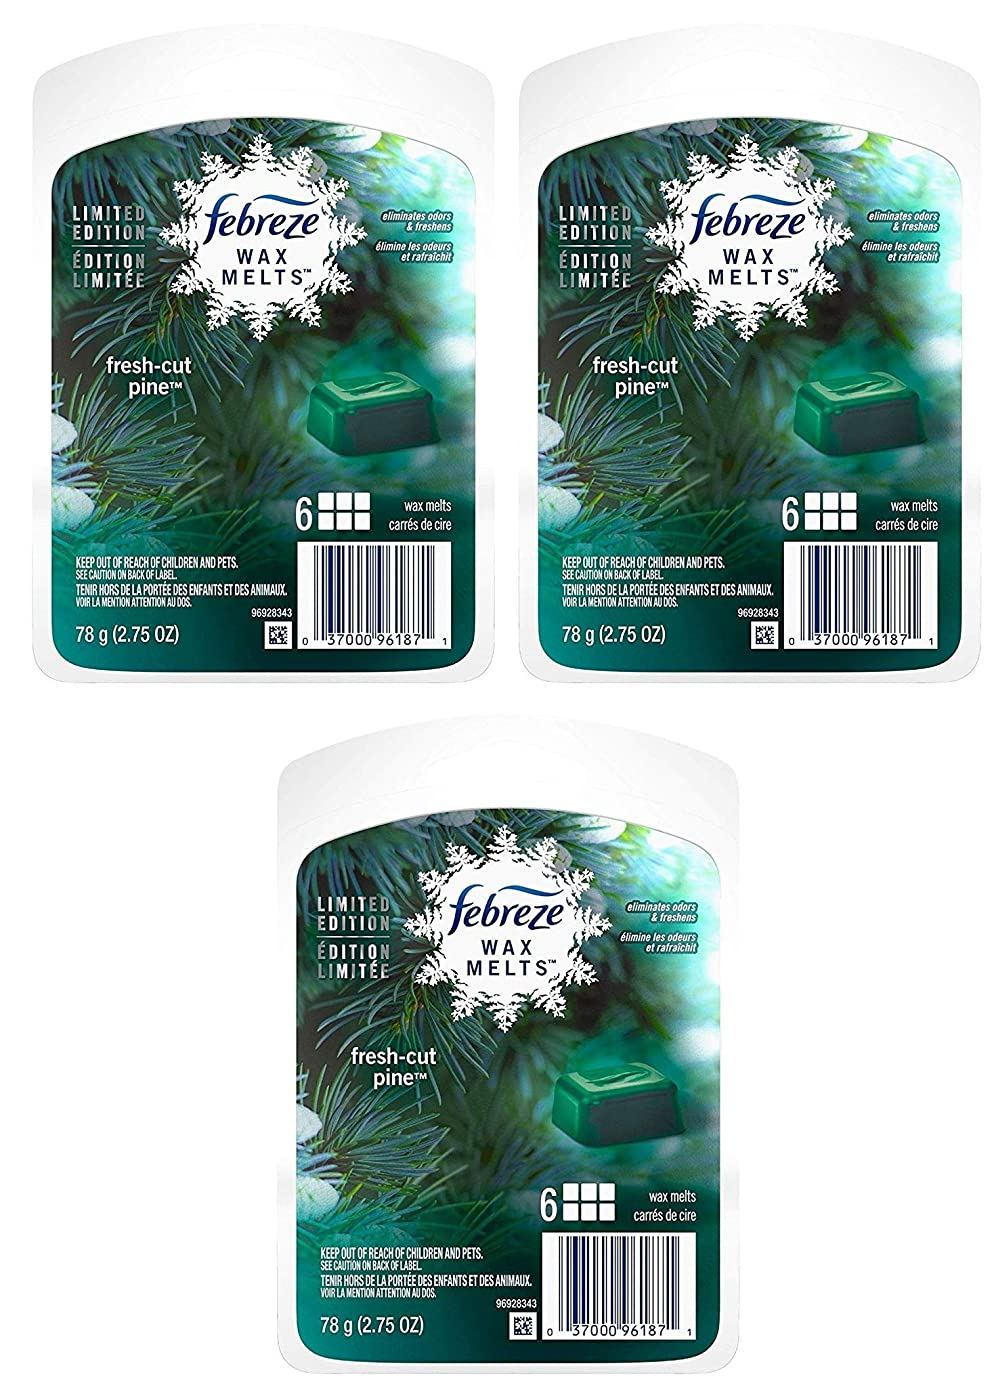 Febreze Wax Melts Air Freshener - Holiday Collection 2018 - Fresh-Cut Pine - Net Wt. 2.75 OZ (78 g) Per Package - Pack of 3 Packages (Packaging Varies)